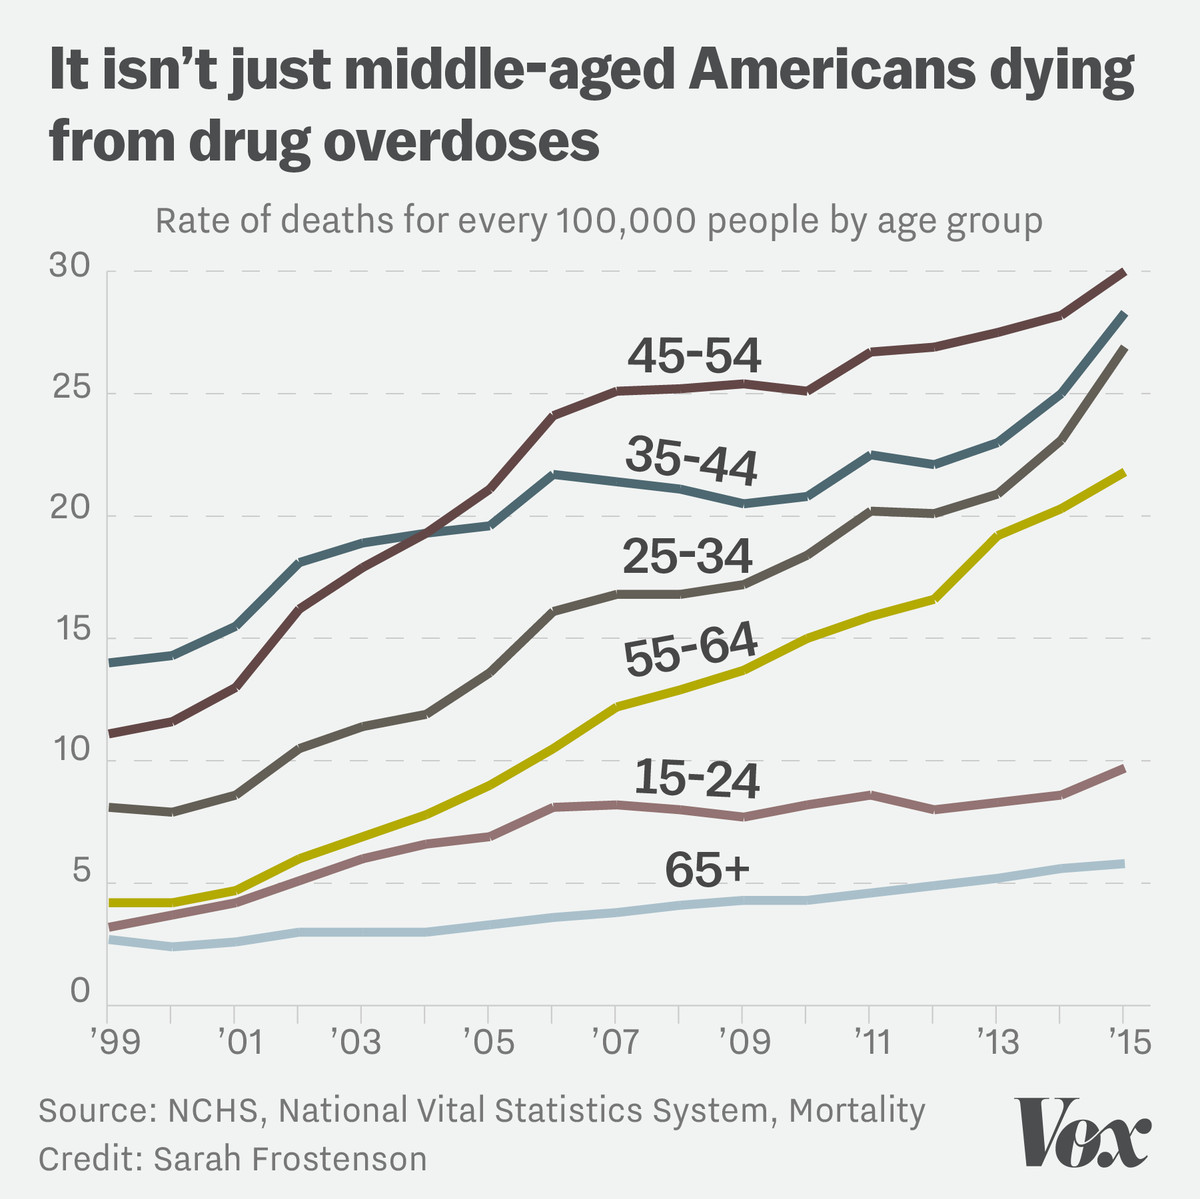 Chart showing that it isn't just middle-aged Americans dying from drug overdoses. It's both older and younger Americans, too.